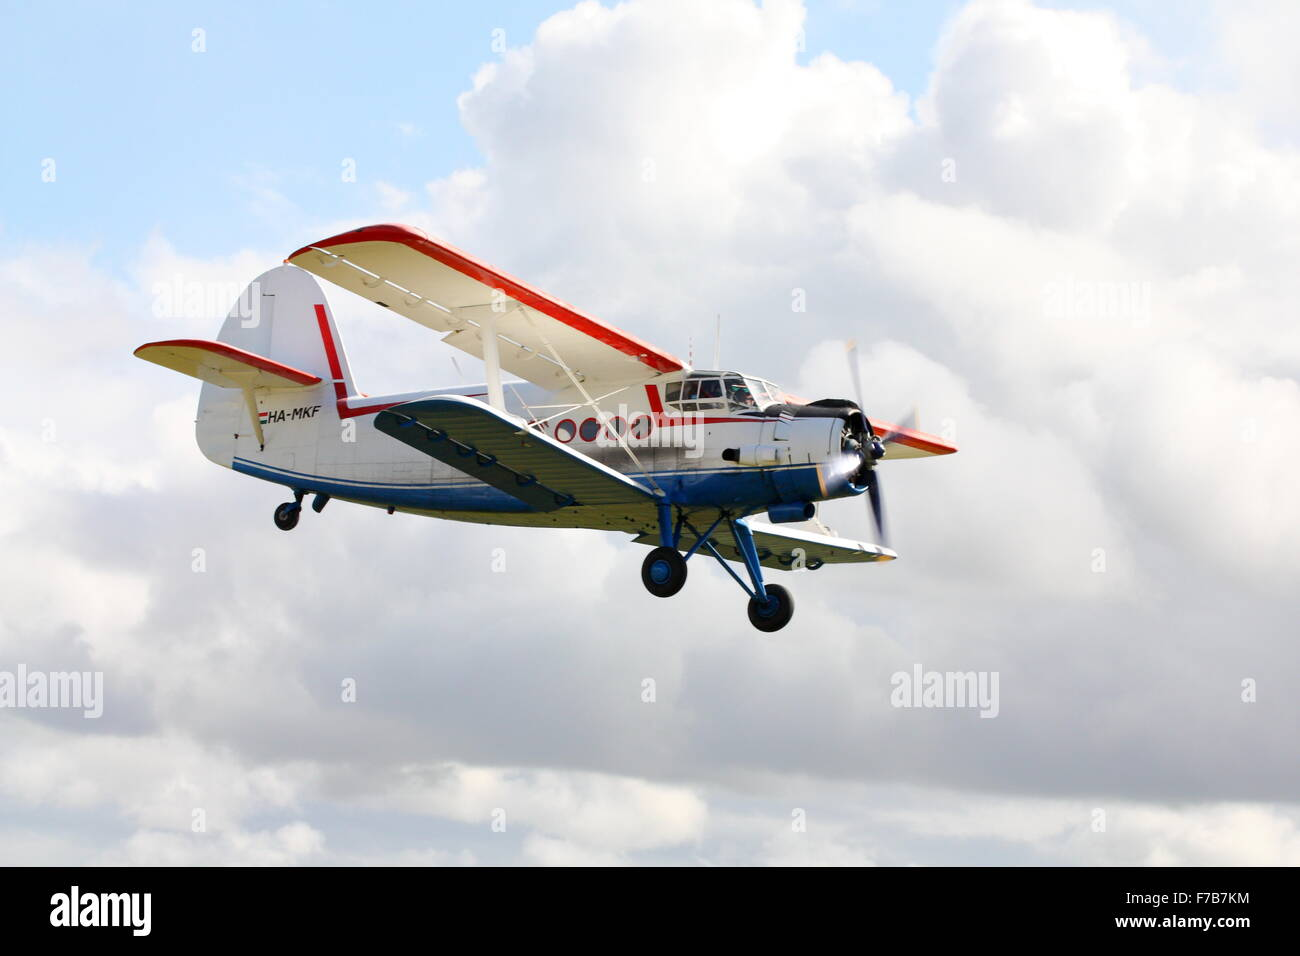 Antonov An-2 flying at Kemble Airfield, Gloucestershire, England - Stock Image